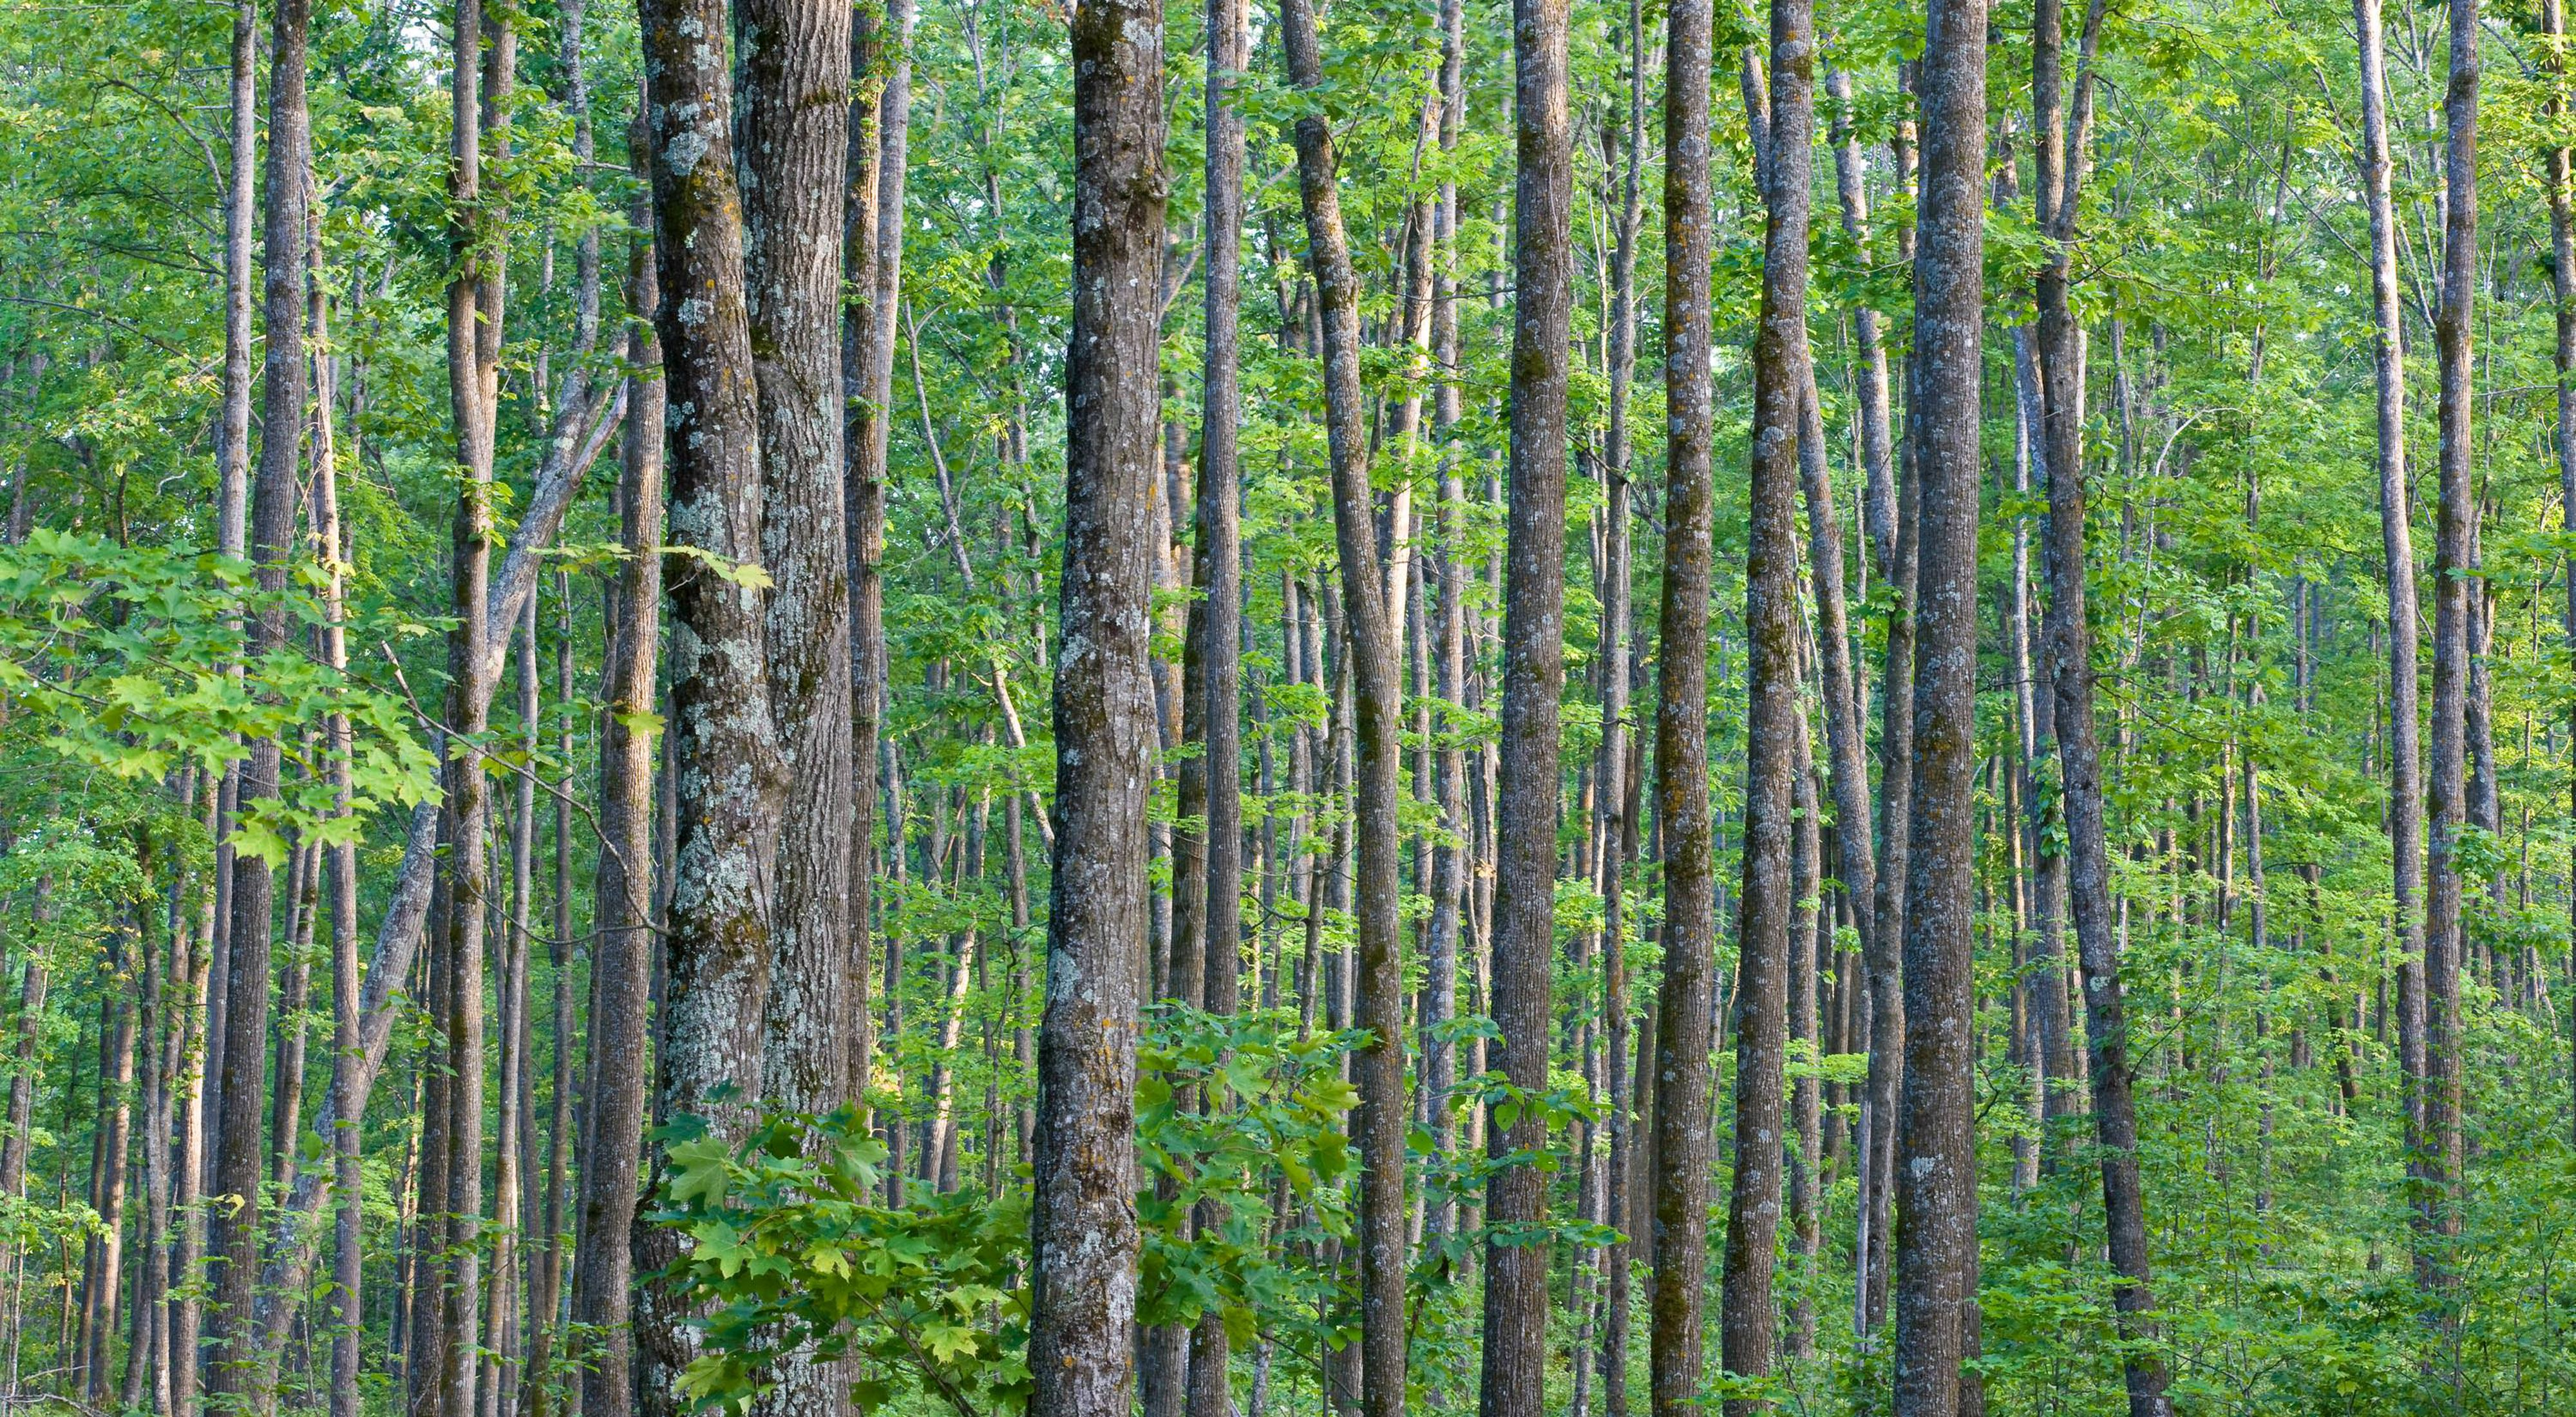 A mixed species hardwood forest